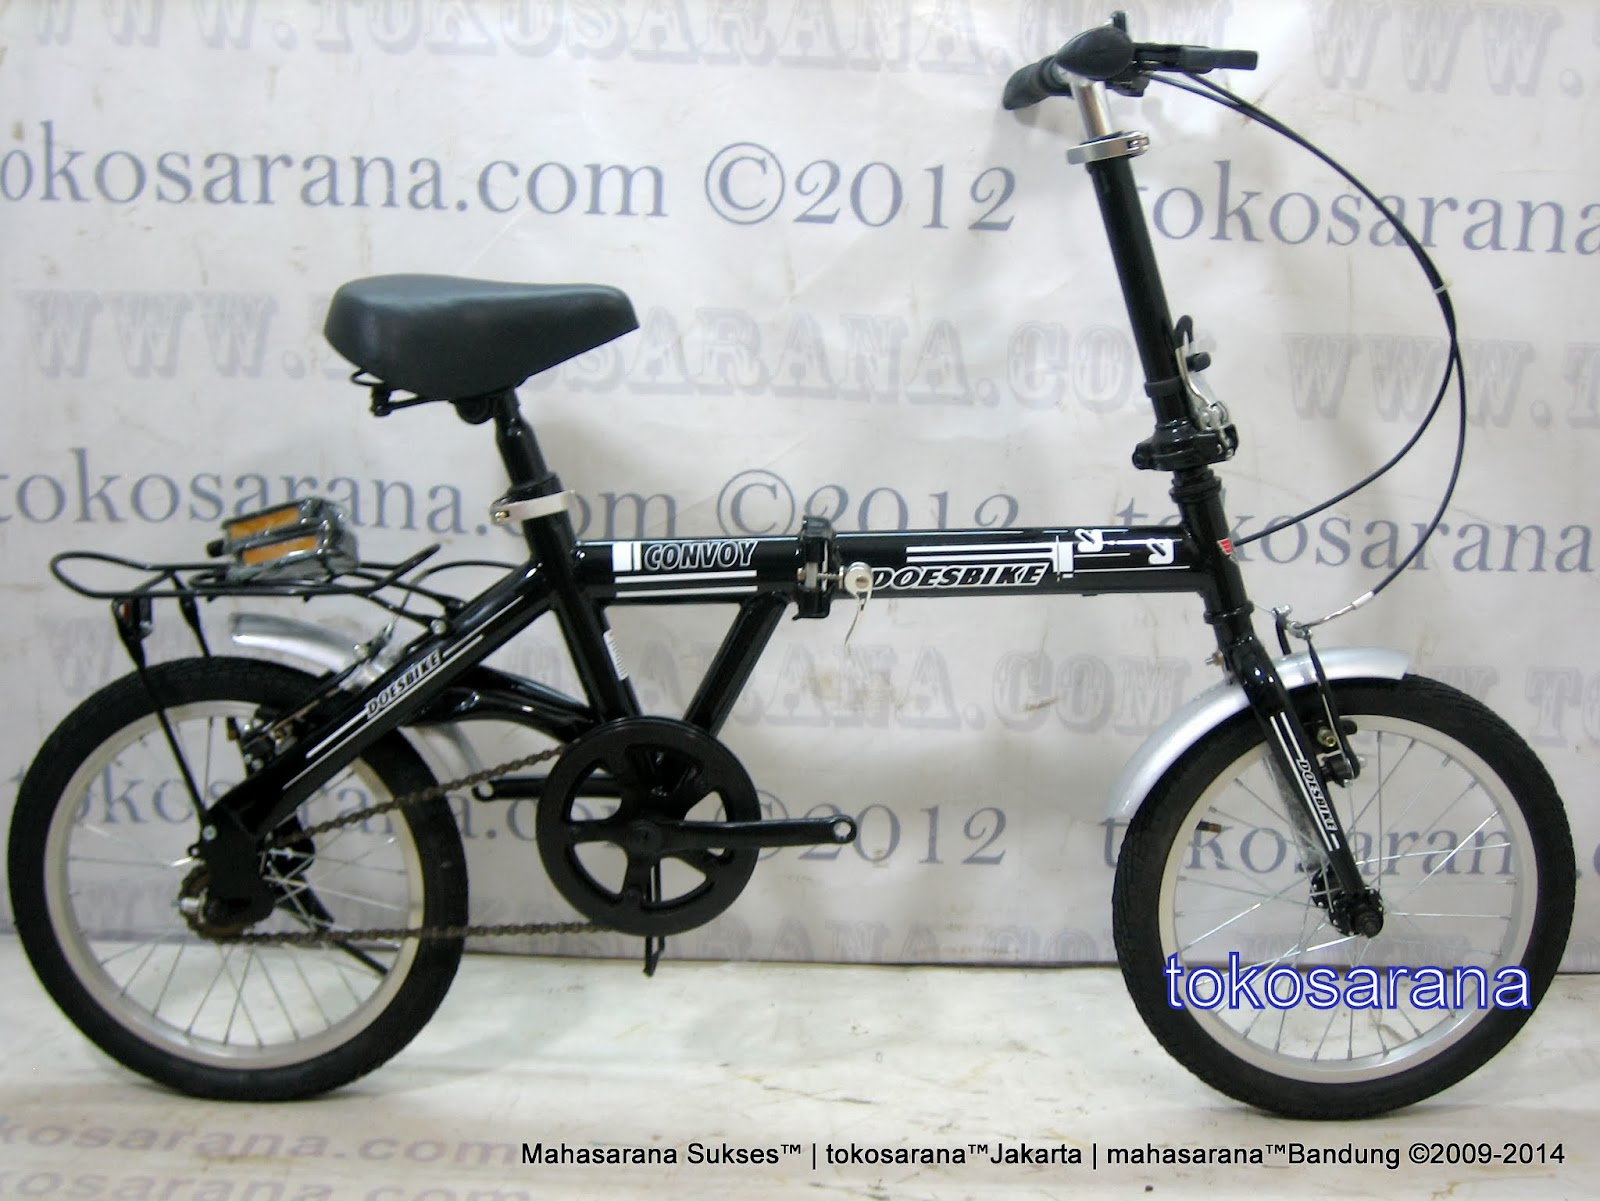 16 Inch DoesBike 1601 Convoy Folding Bike with Carrier